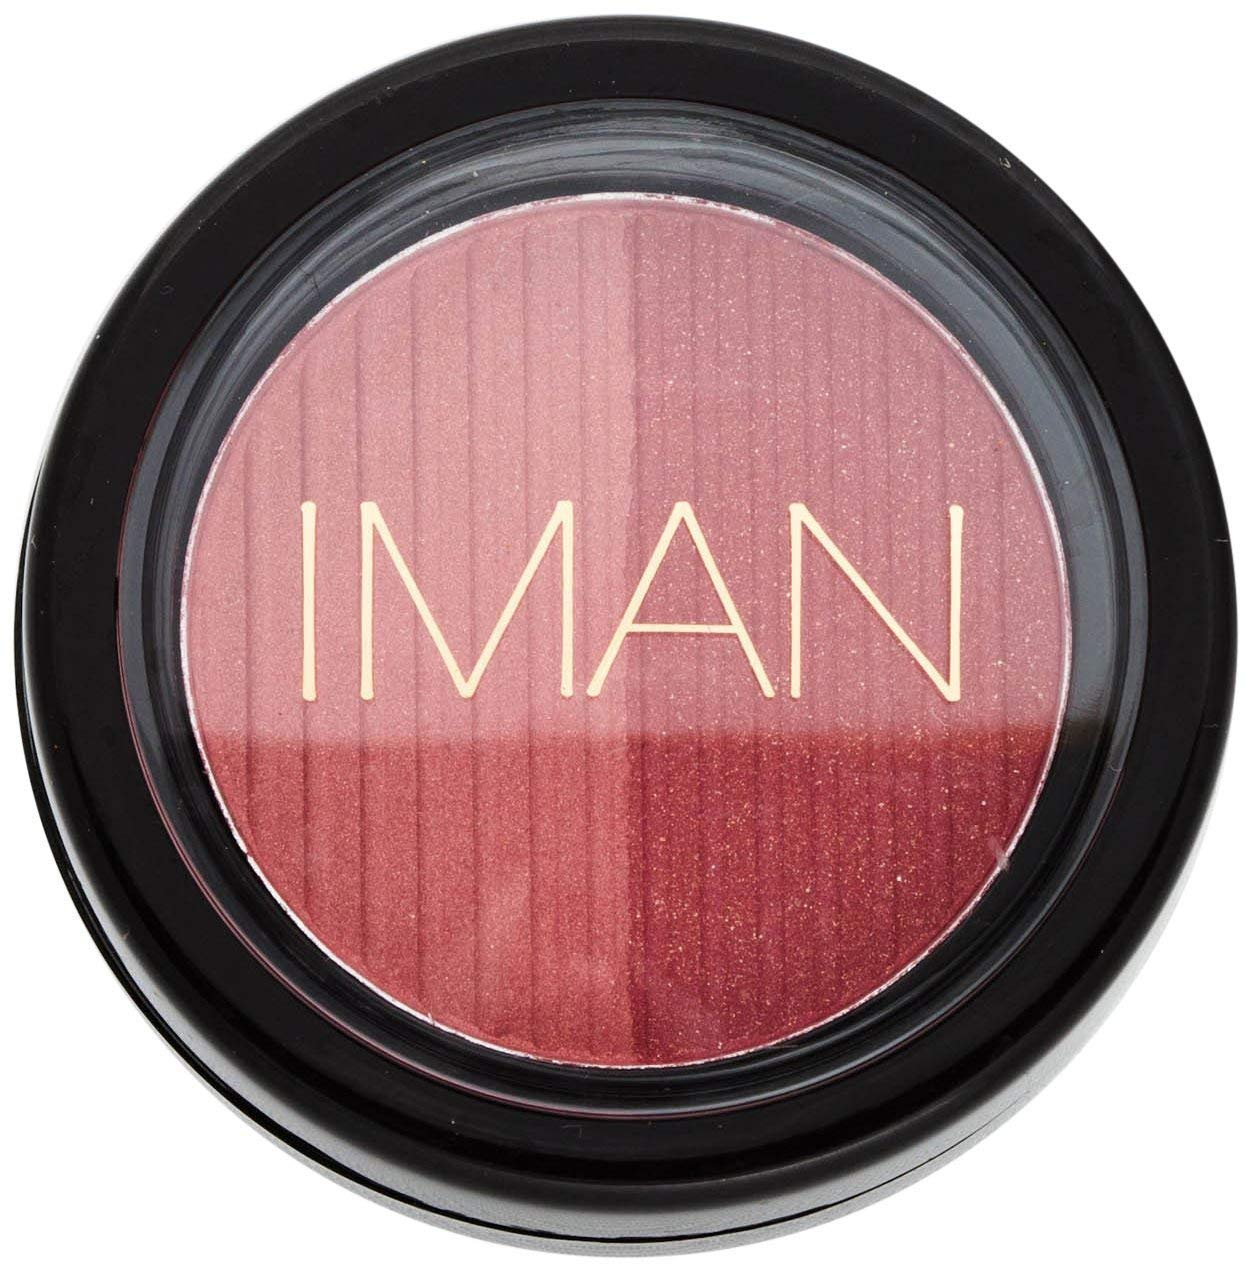 Iman Cosmetics Blushing Powder Posh Duo